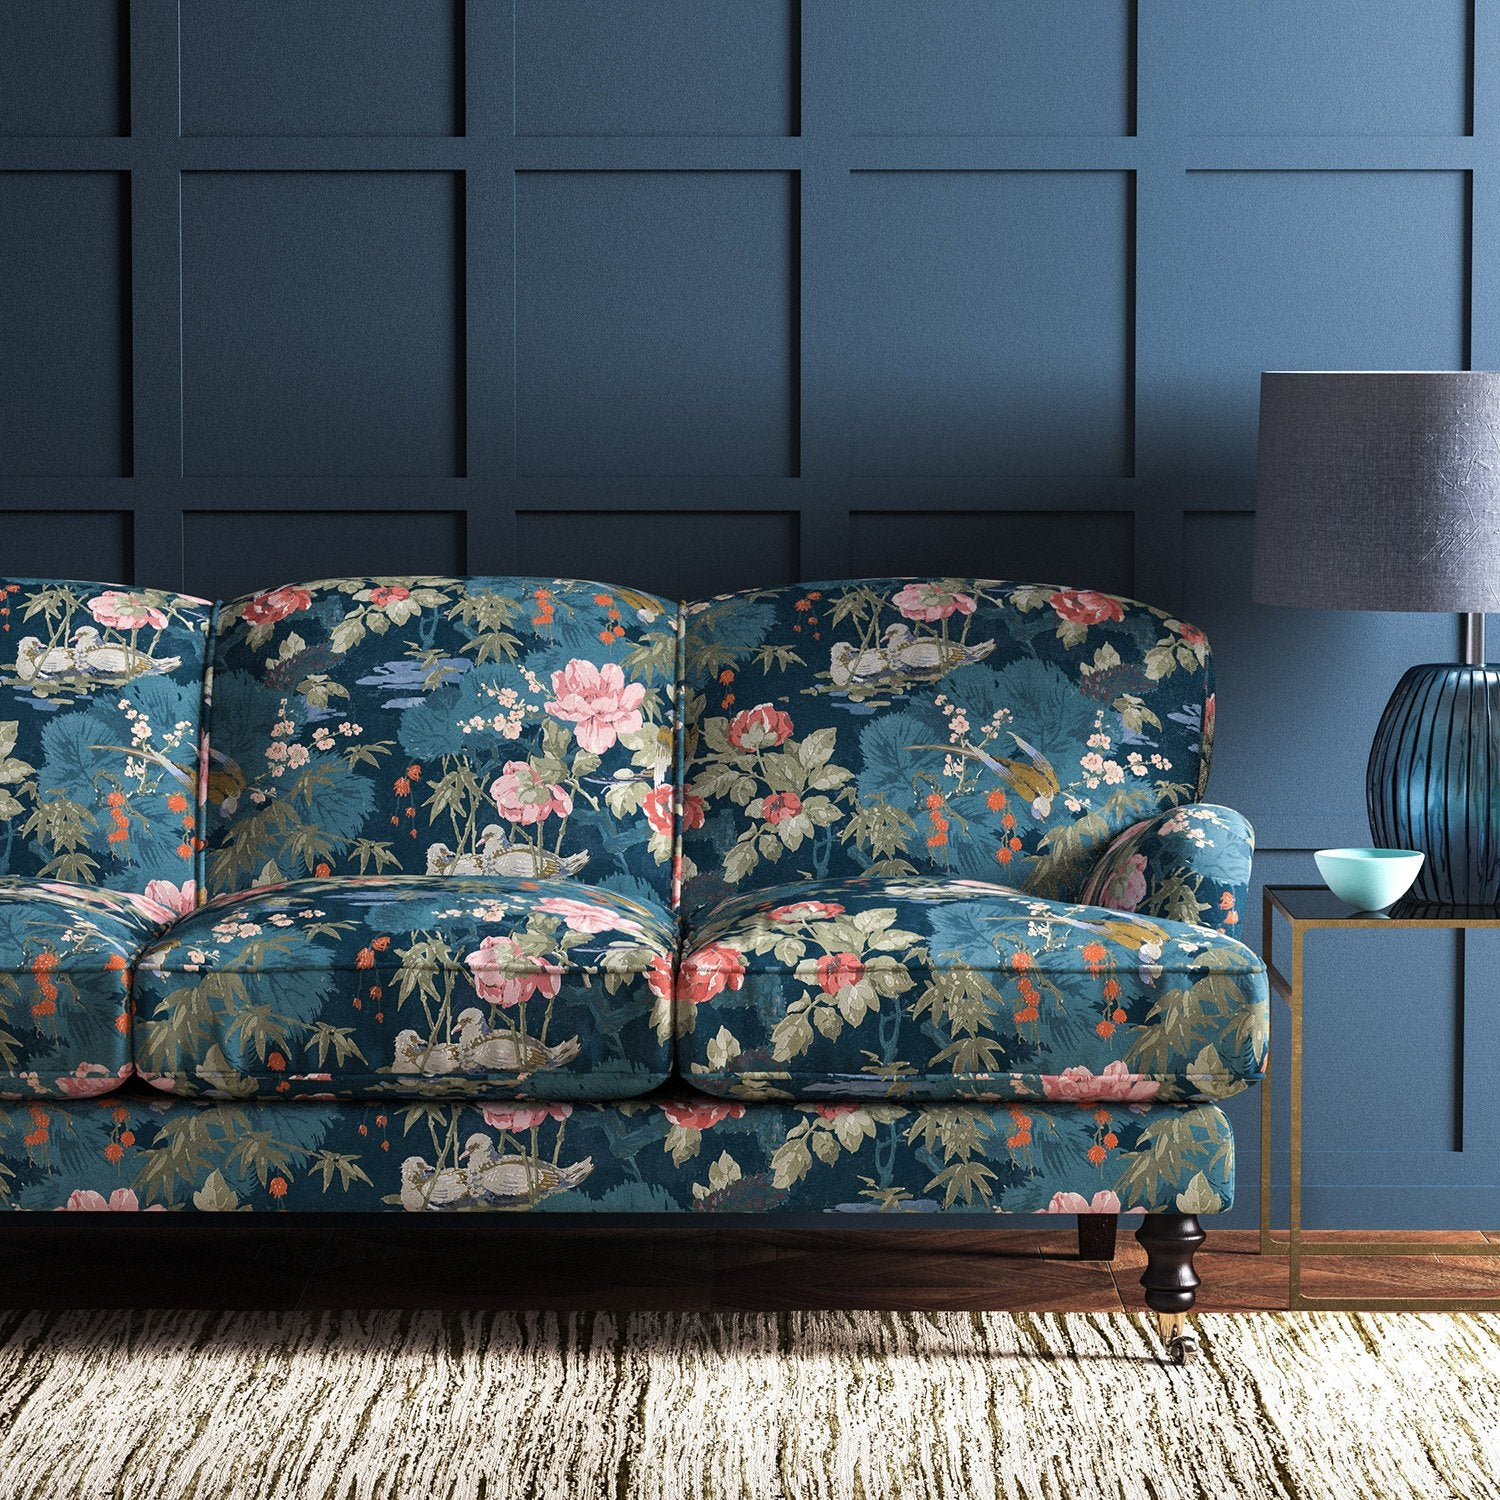 Velvet sofa upholstered in a blue velvet upholstery fabric with floral and bird design with a stain resistant finish